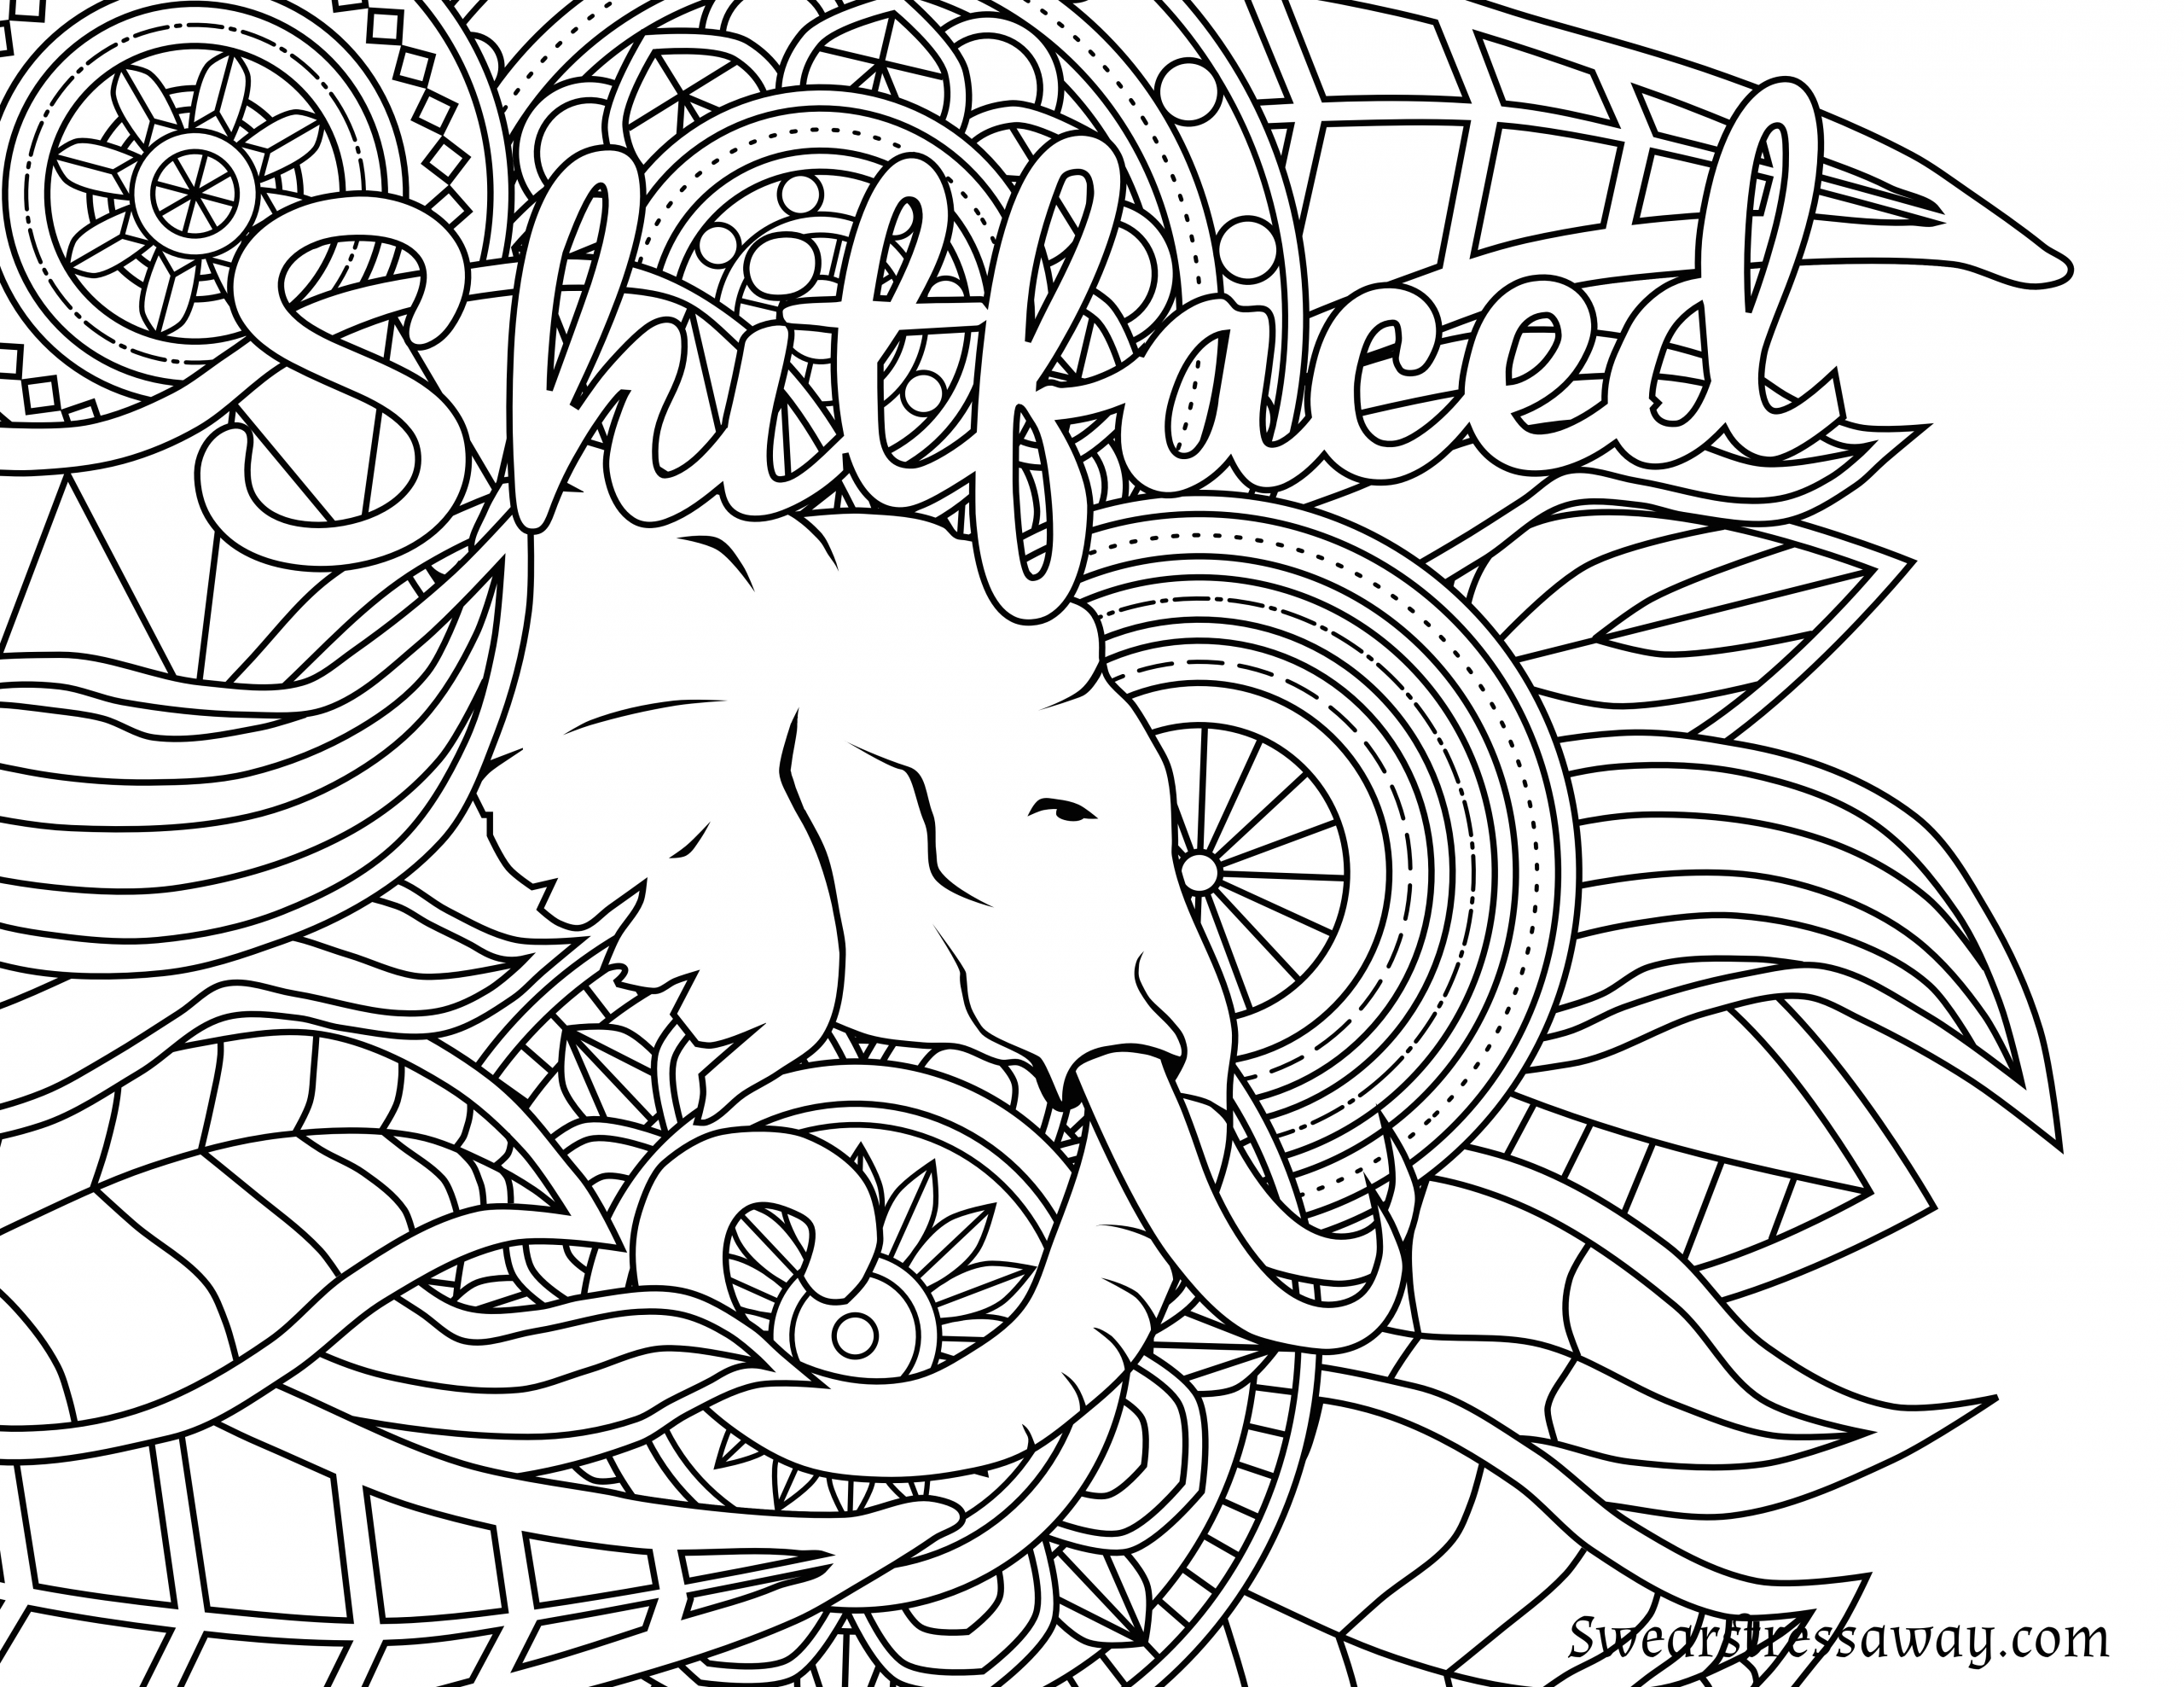 Adult Coloring Pages Swear Words  Free Adult Swear Word Coloring Pages